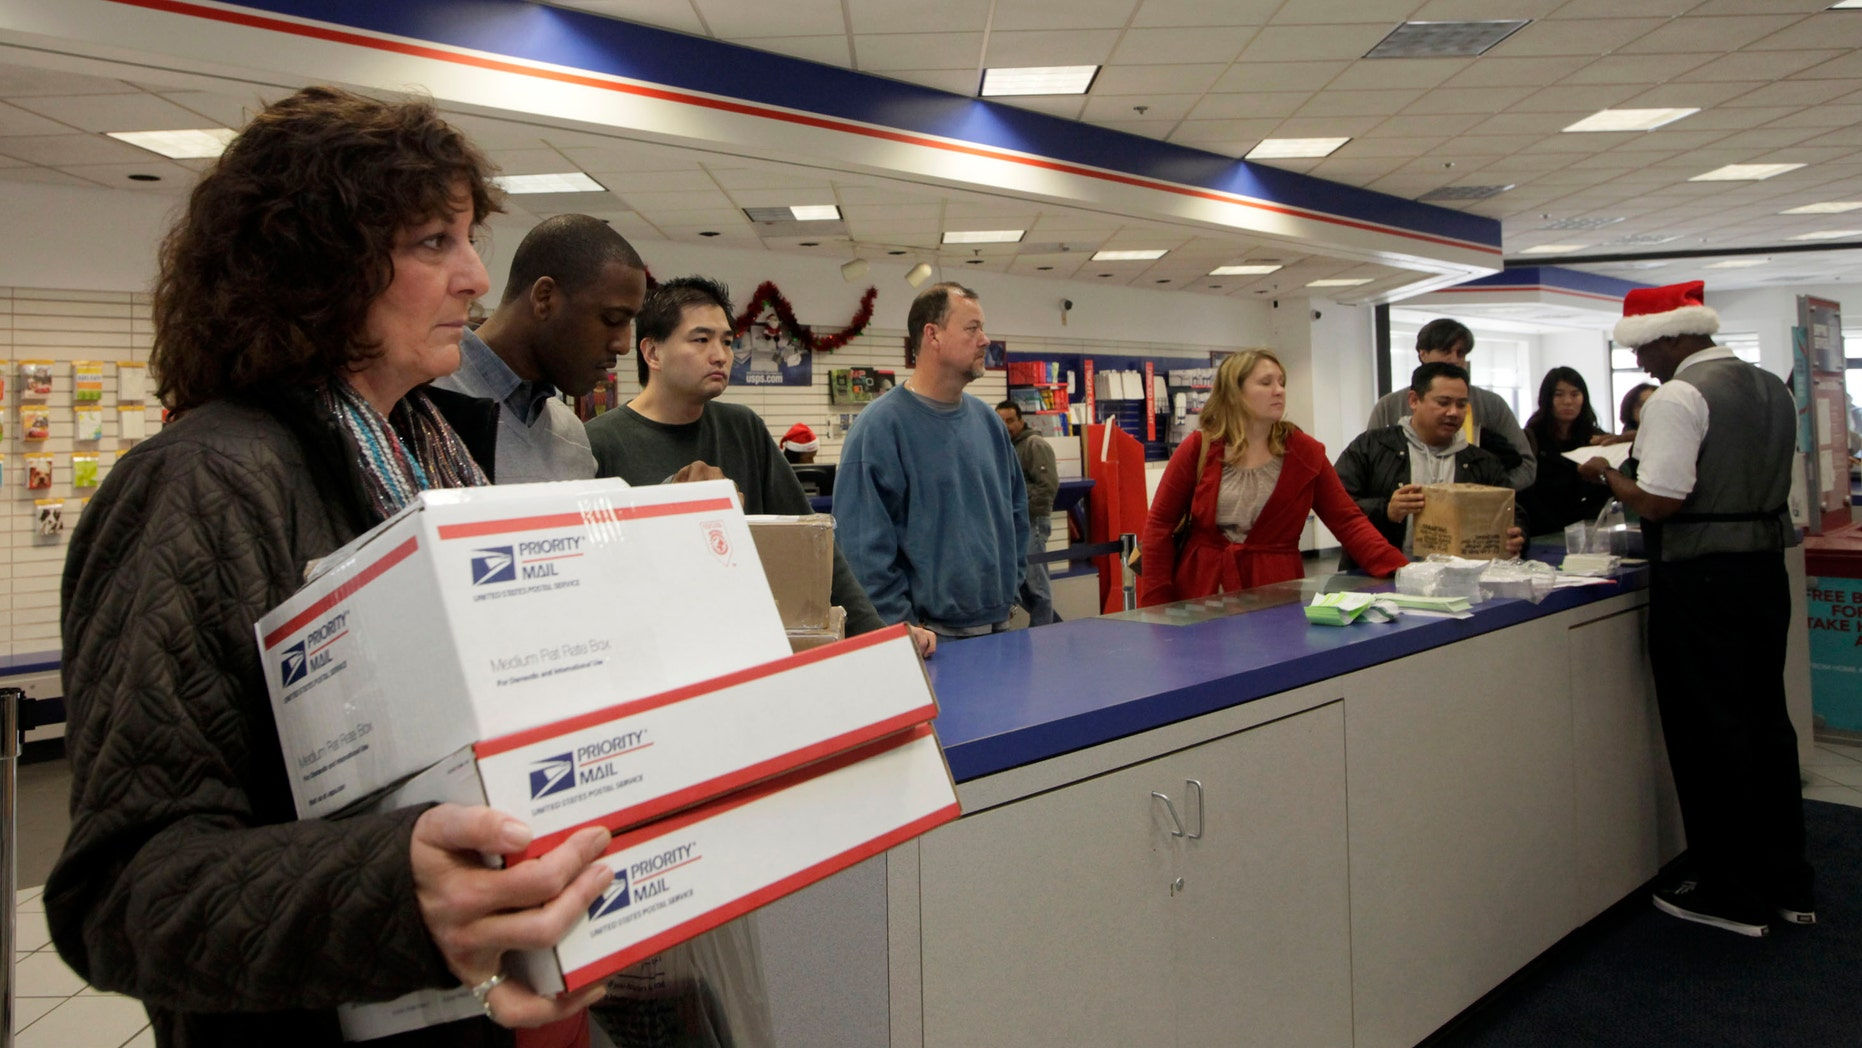 Dec. 19, 2011: This file photo shows people in line at the U.S. Postal Service Airport station in Los Angeles.